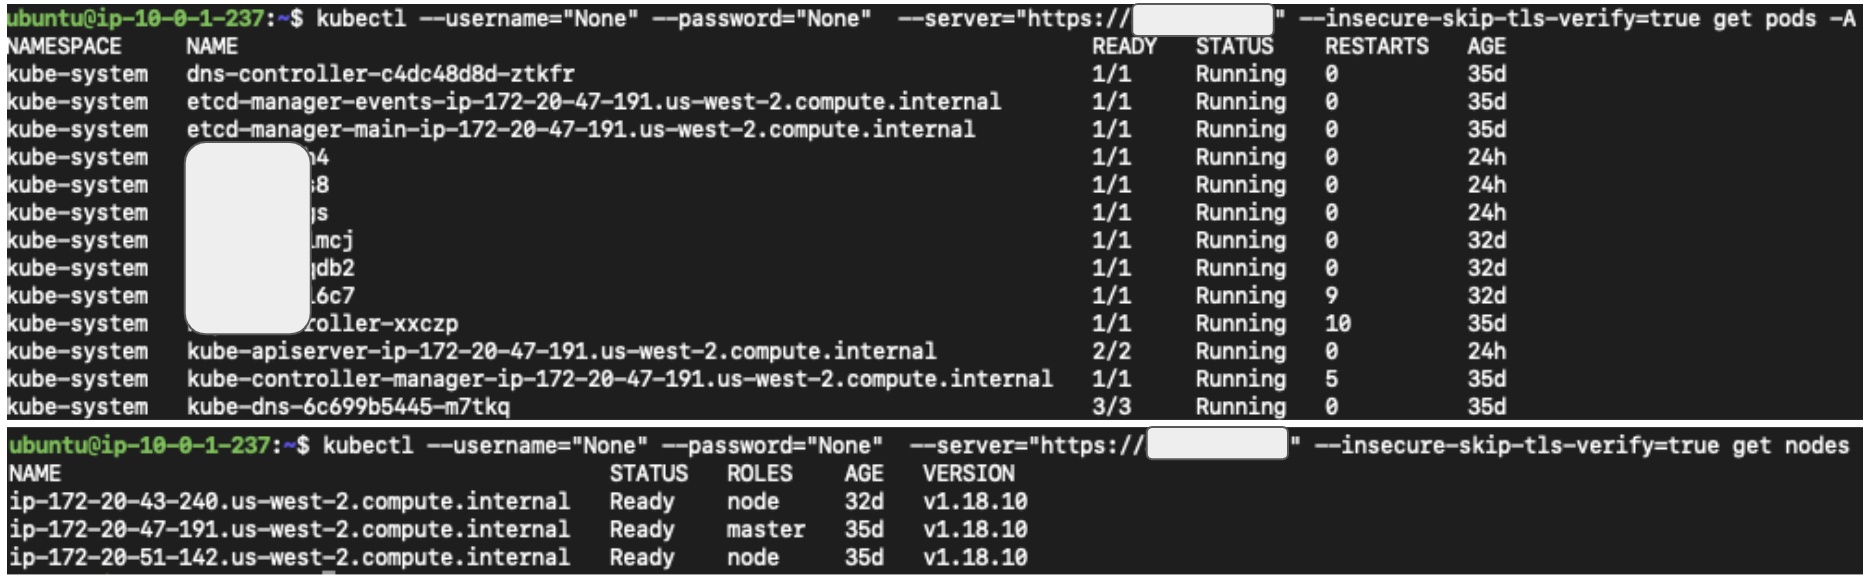 Figure 3. Accessing kube-apiserver anonymously using kubectl. Note that kubectl needs a dummy username and password to send anonymous requests.